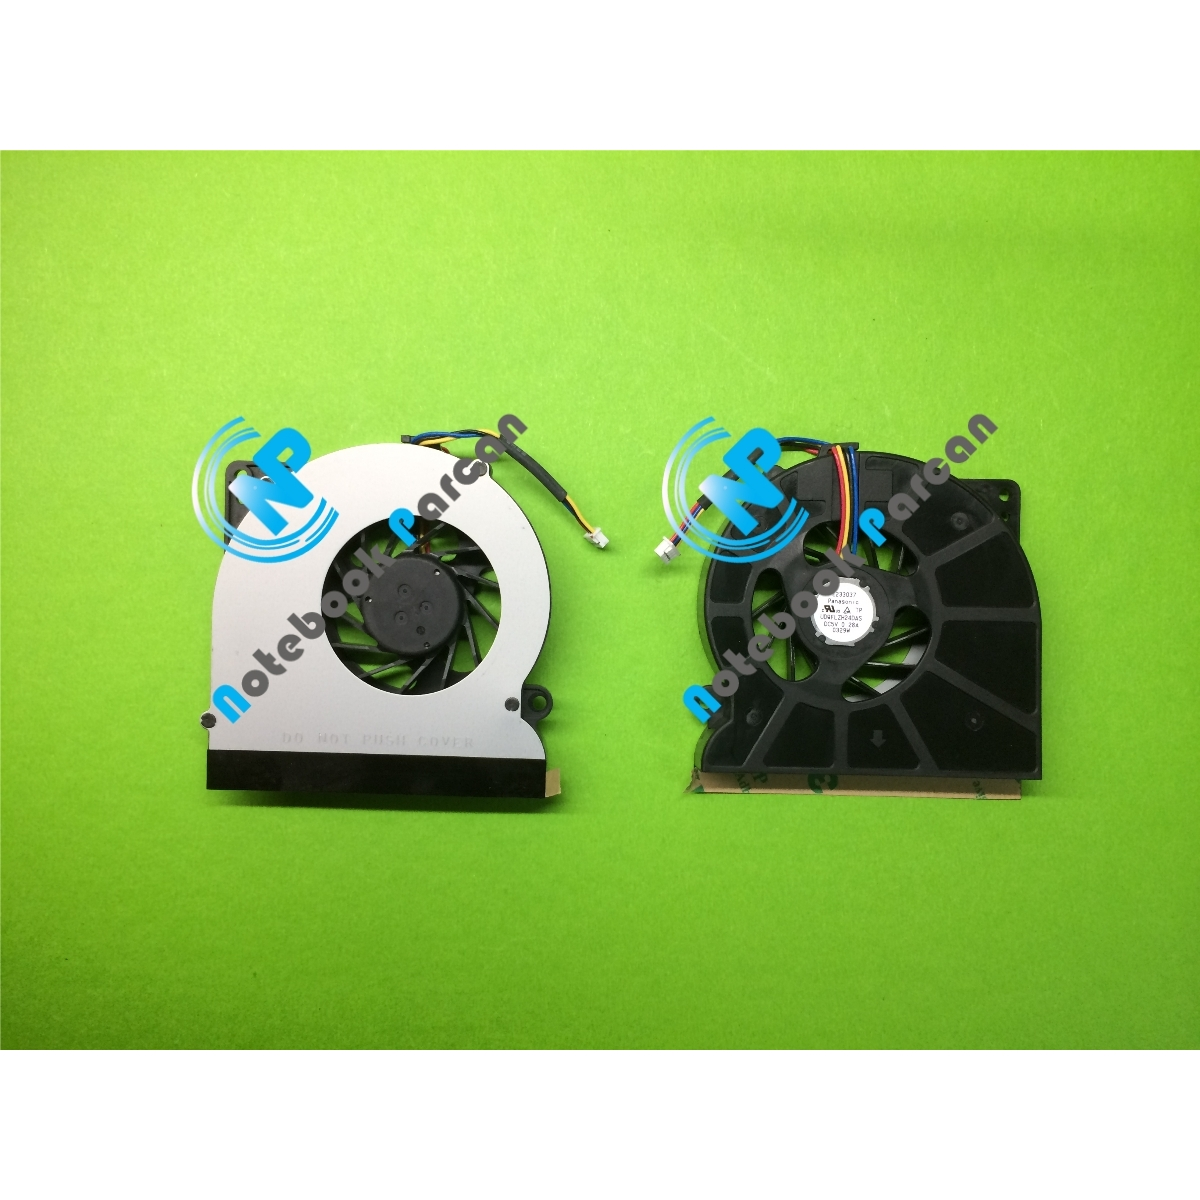 Asus A52DR Notebook Fan